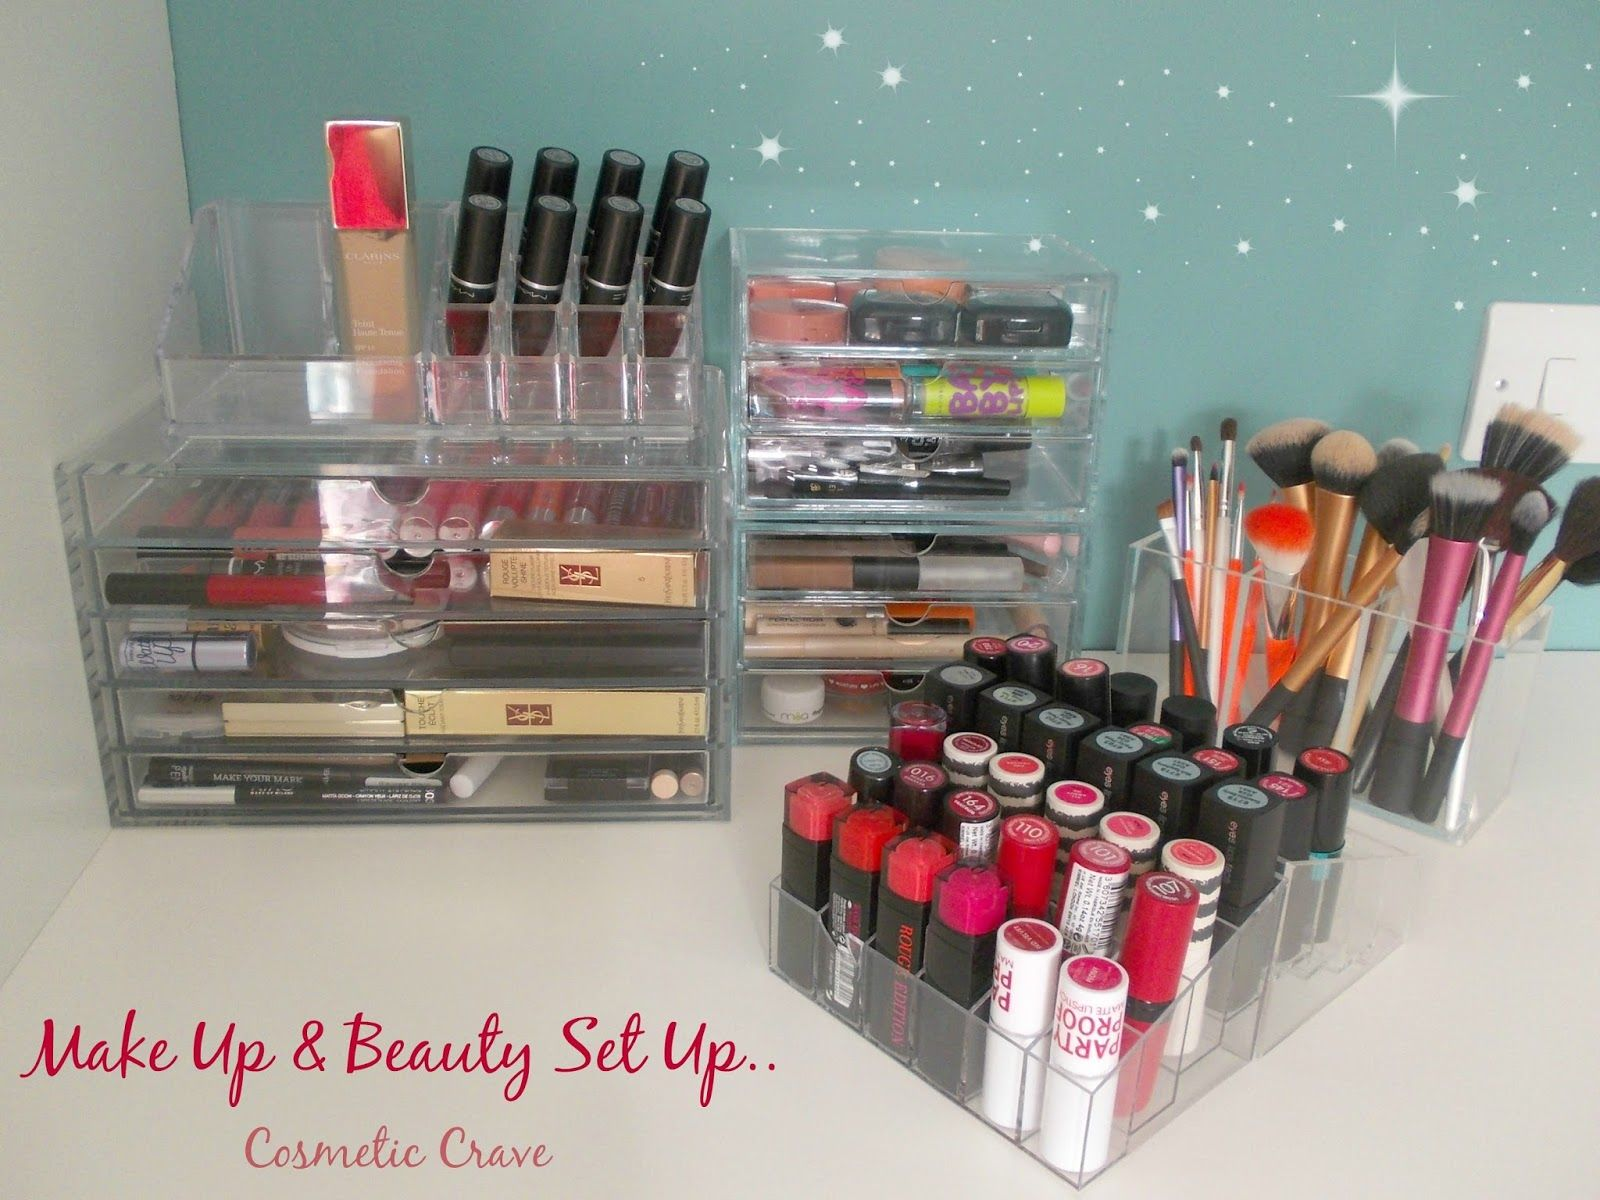 Cosmetic Crave: Muji And Ikea Storage!   Make Up And Beauty Set Up